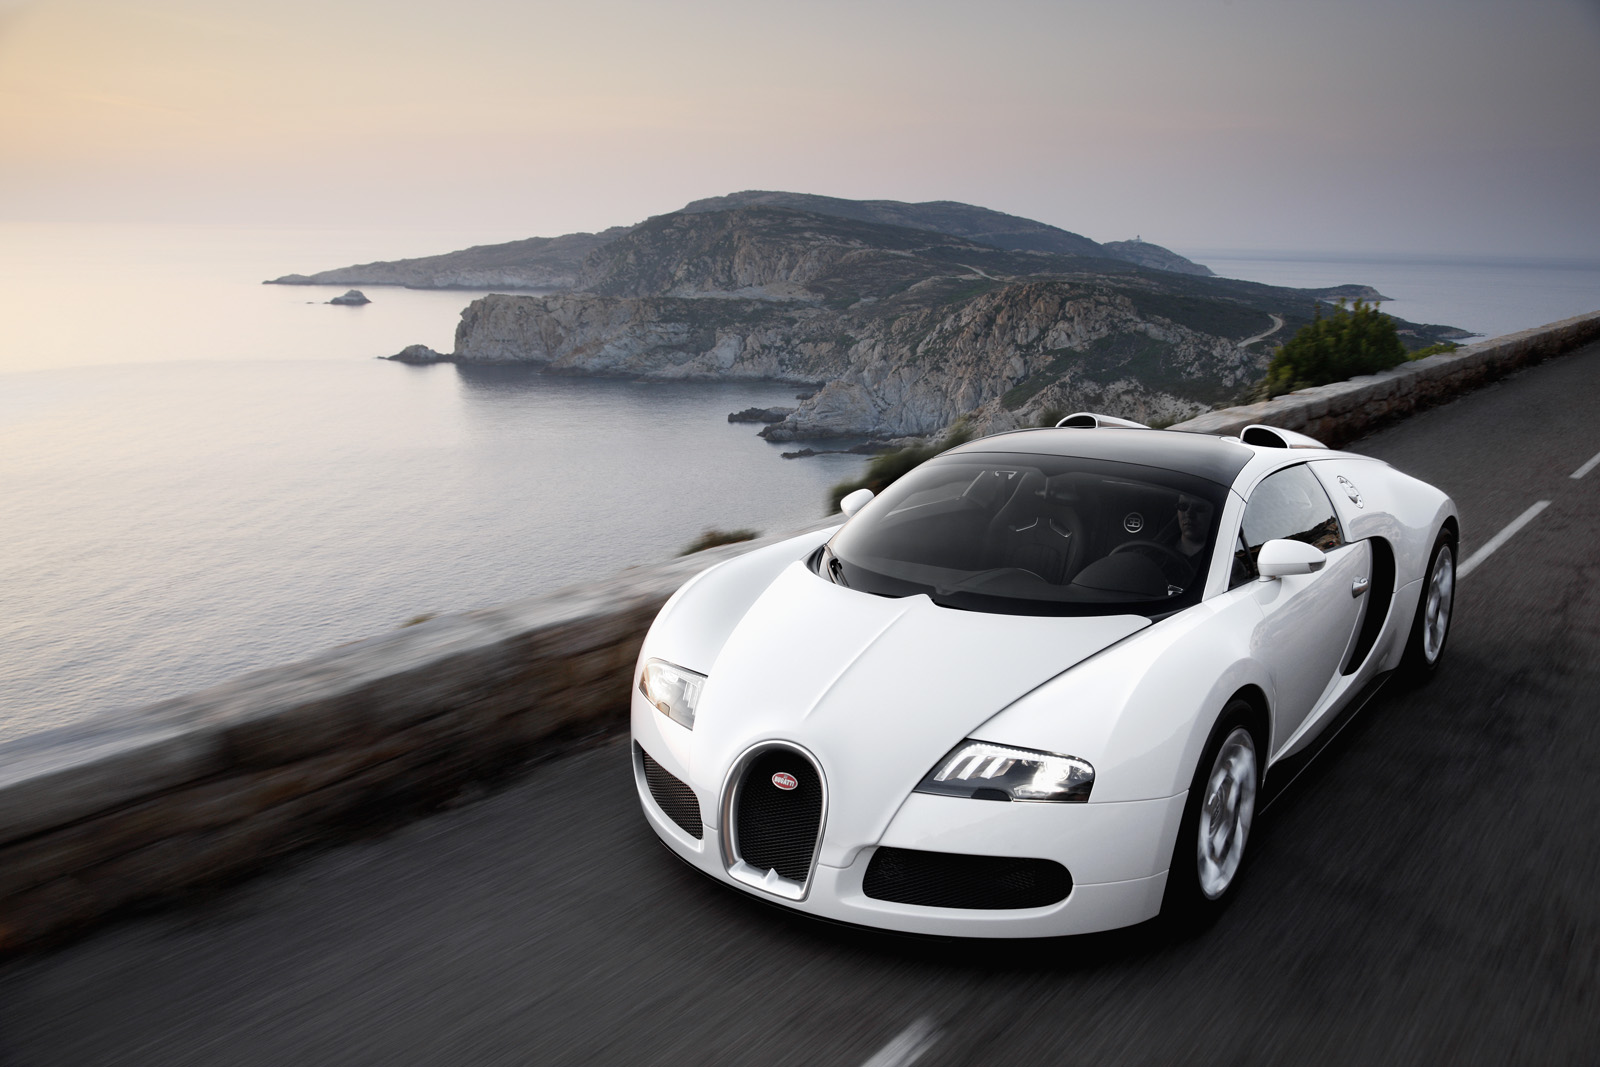 Bugatti Veyron Though Many Special Variants And Limited Editions Wallpapers Download